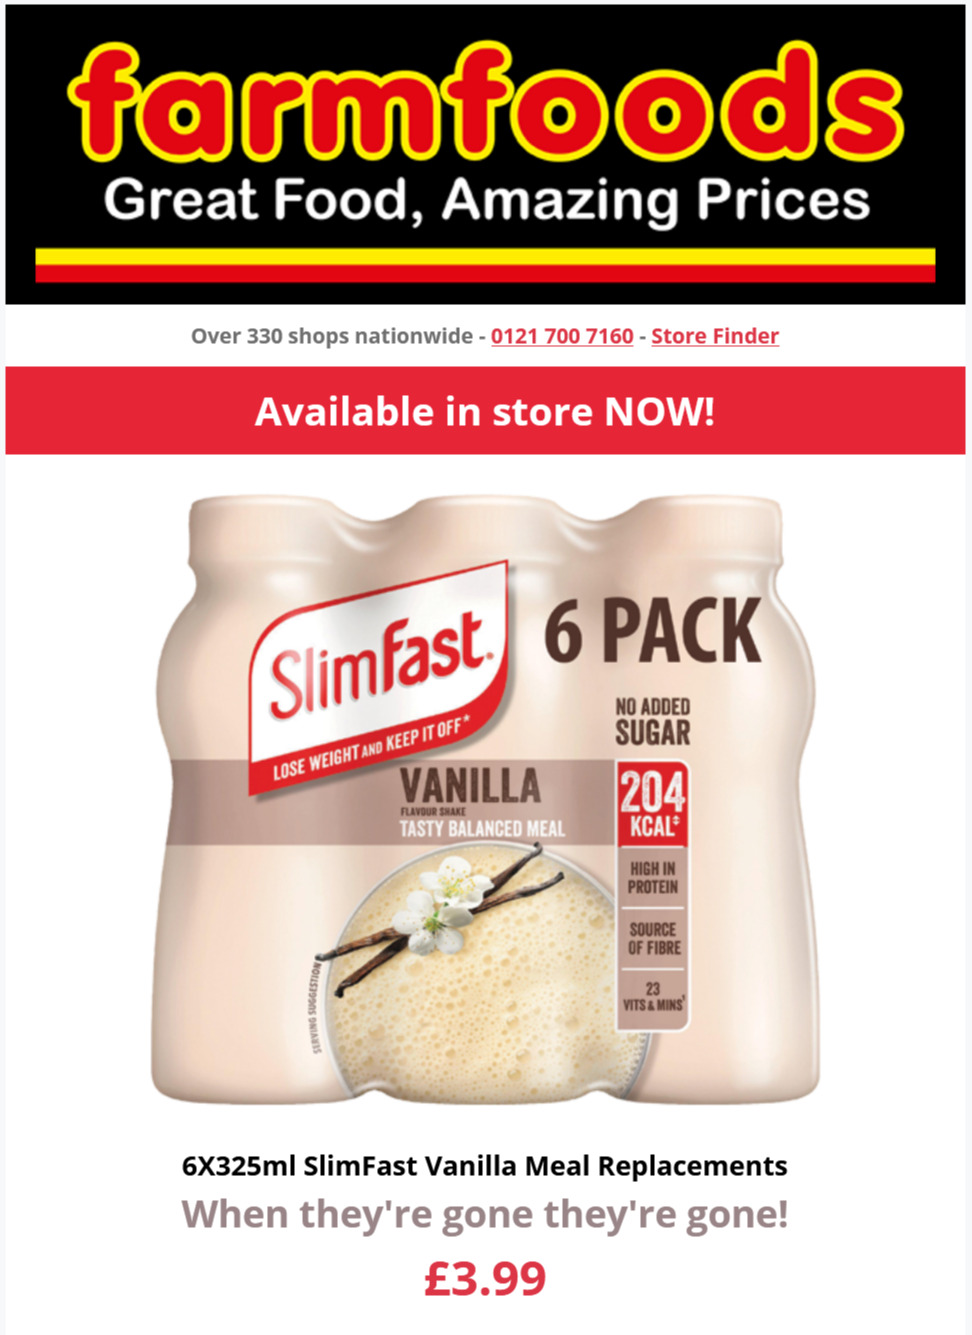 Farmfoods Offers Valid until at least 2nd August 2021 Farmfoods Voucher